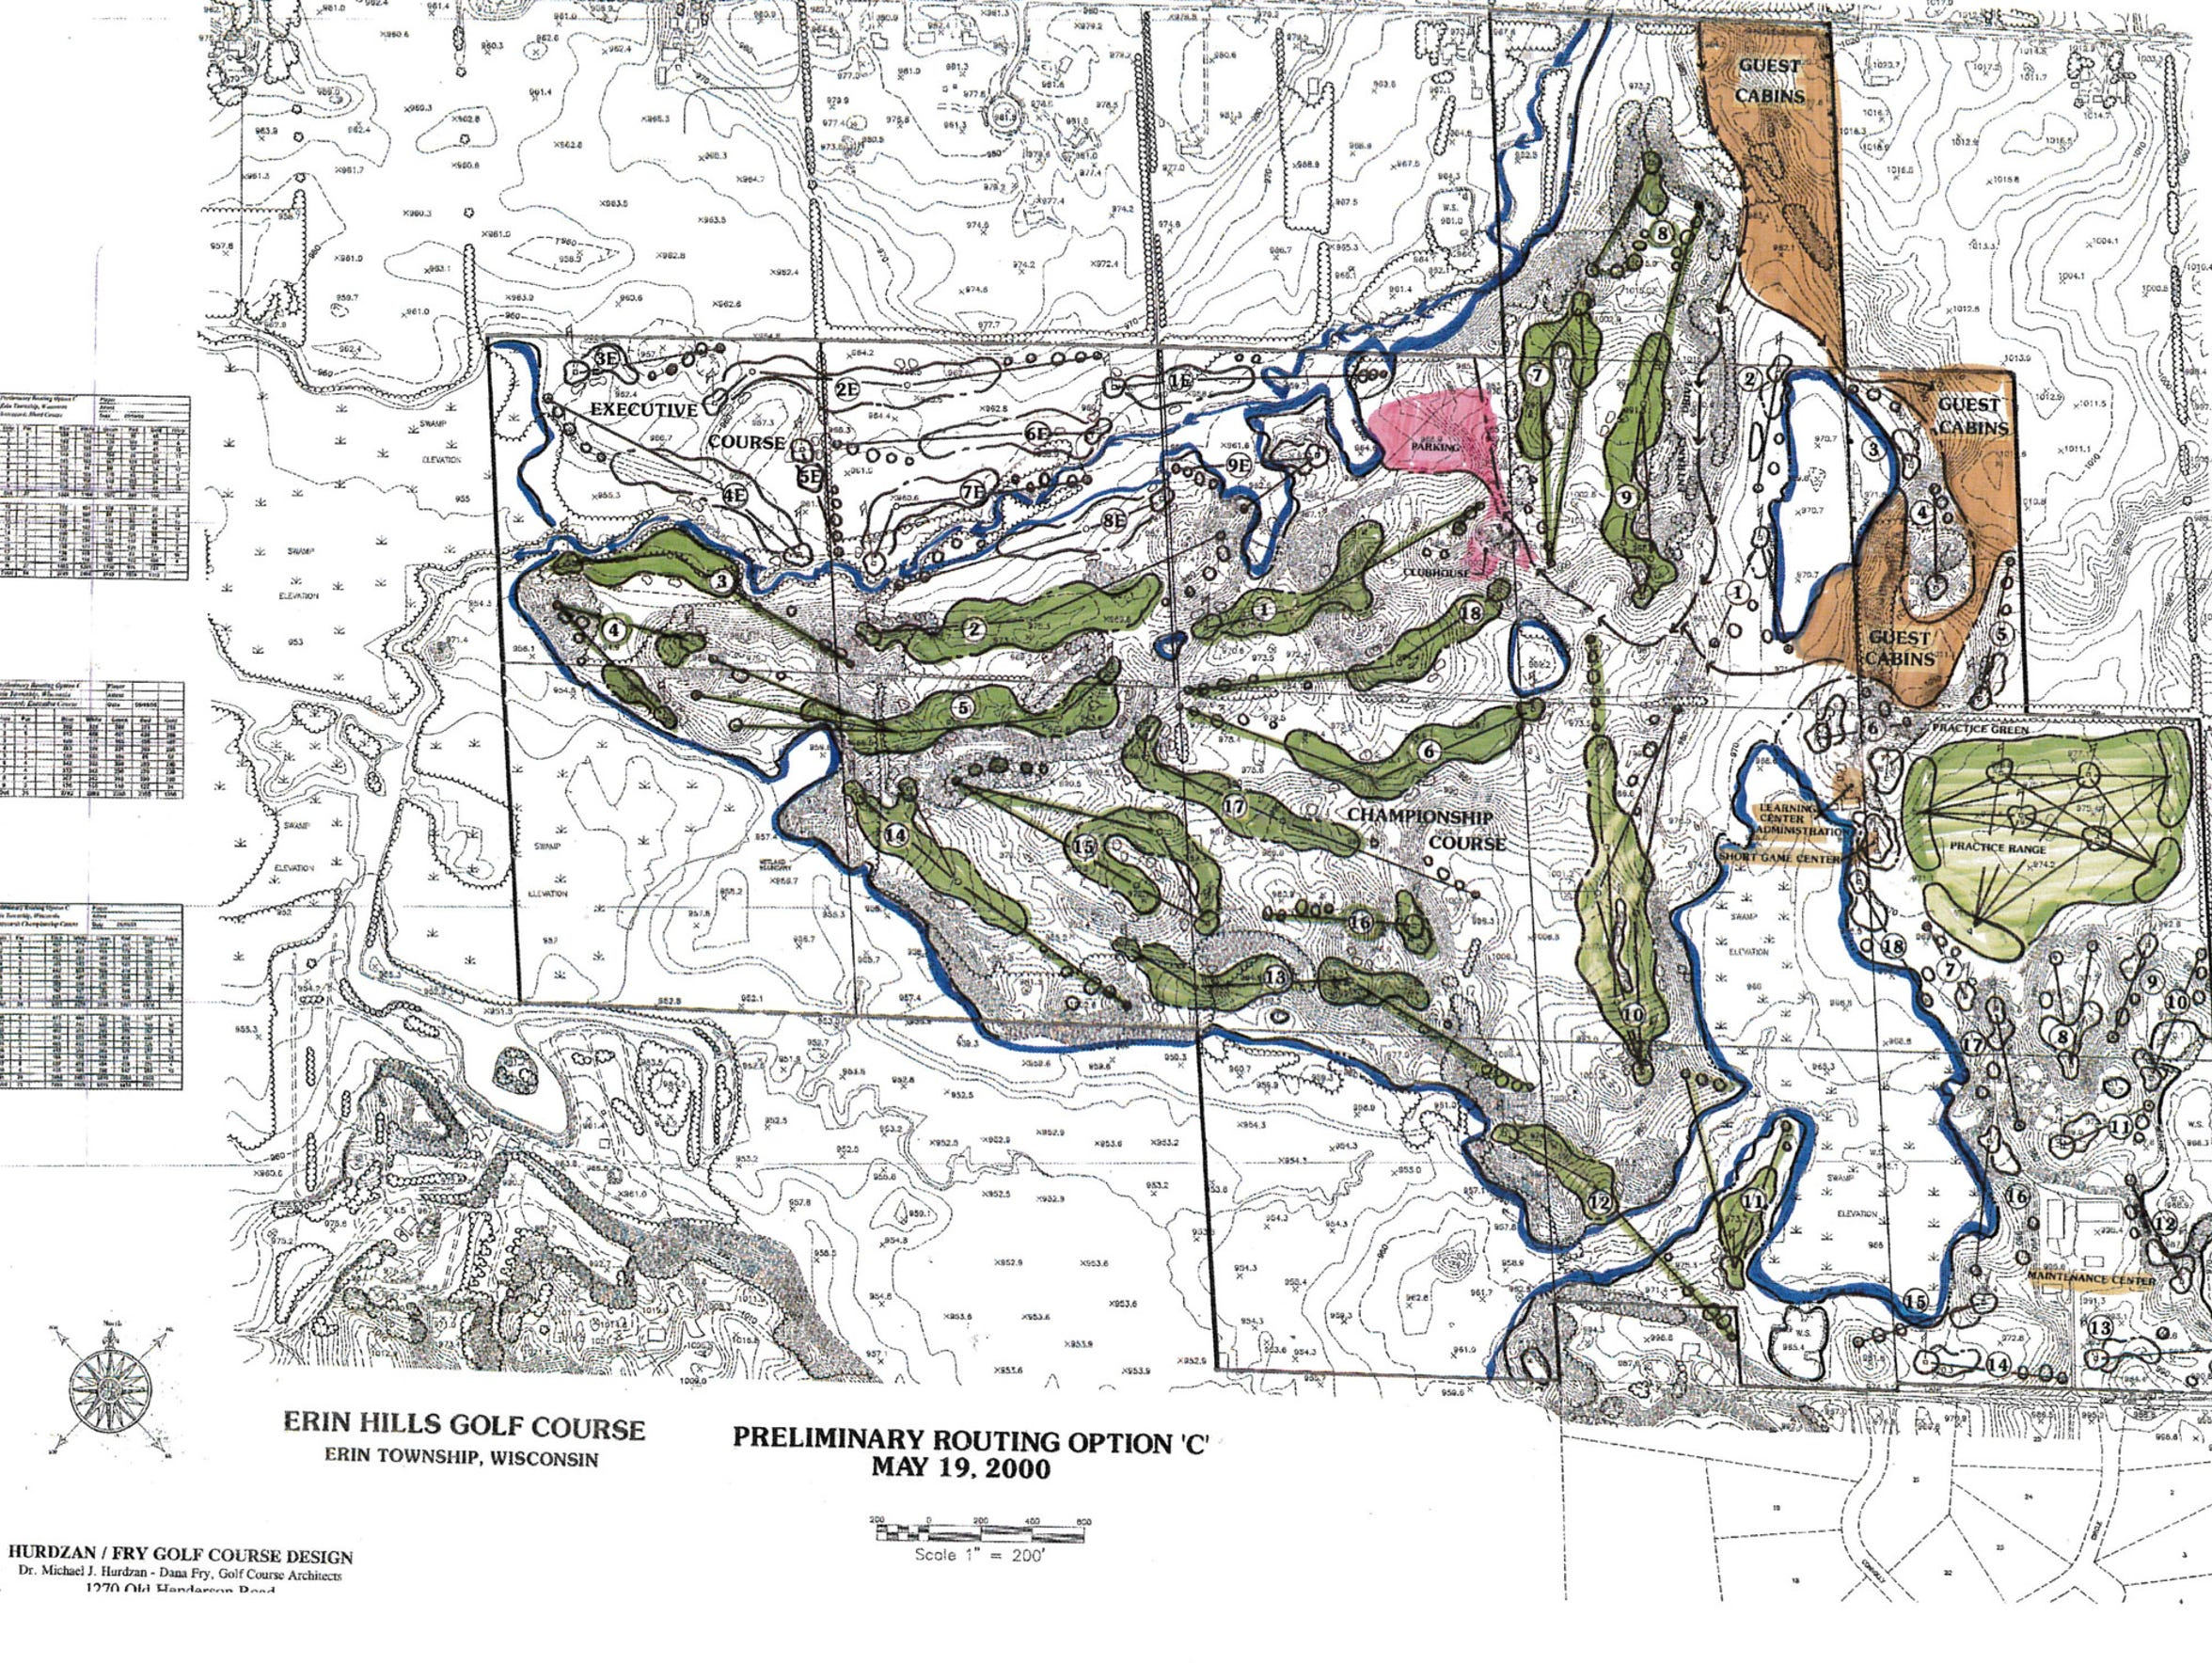 This was a circa 2000 routing of Erin Hills by Hurdzan-Fry-Whitten.